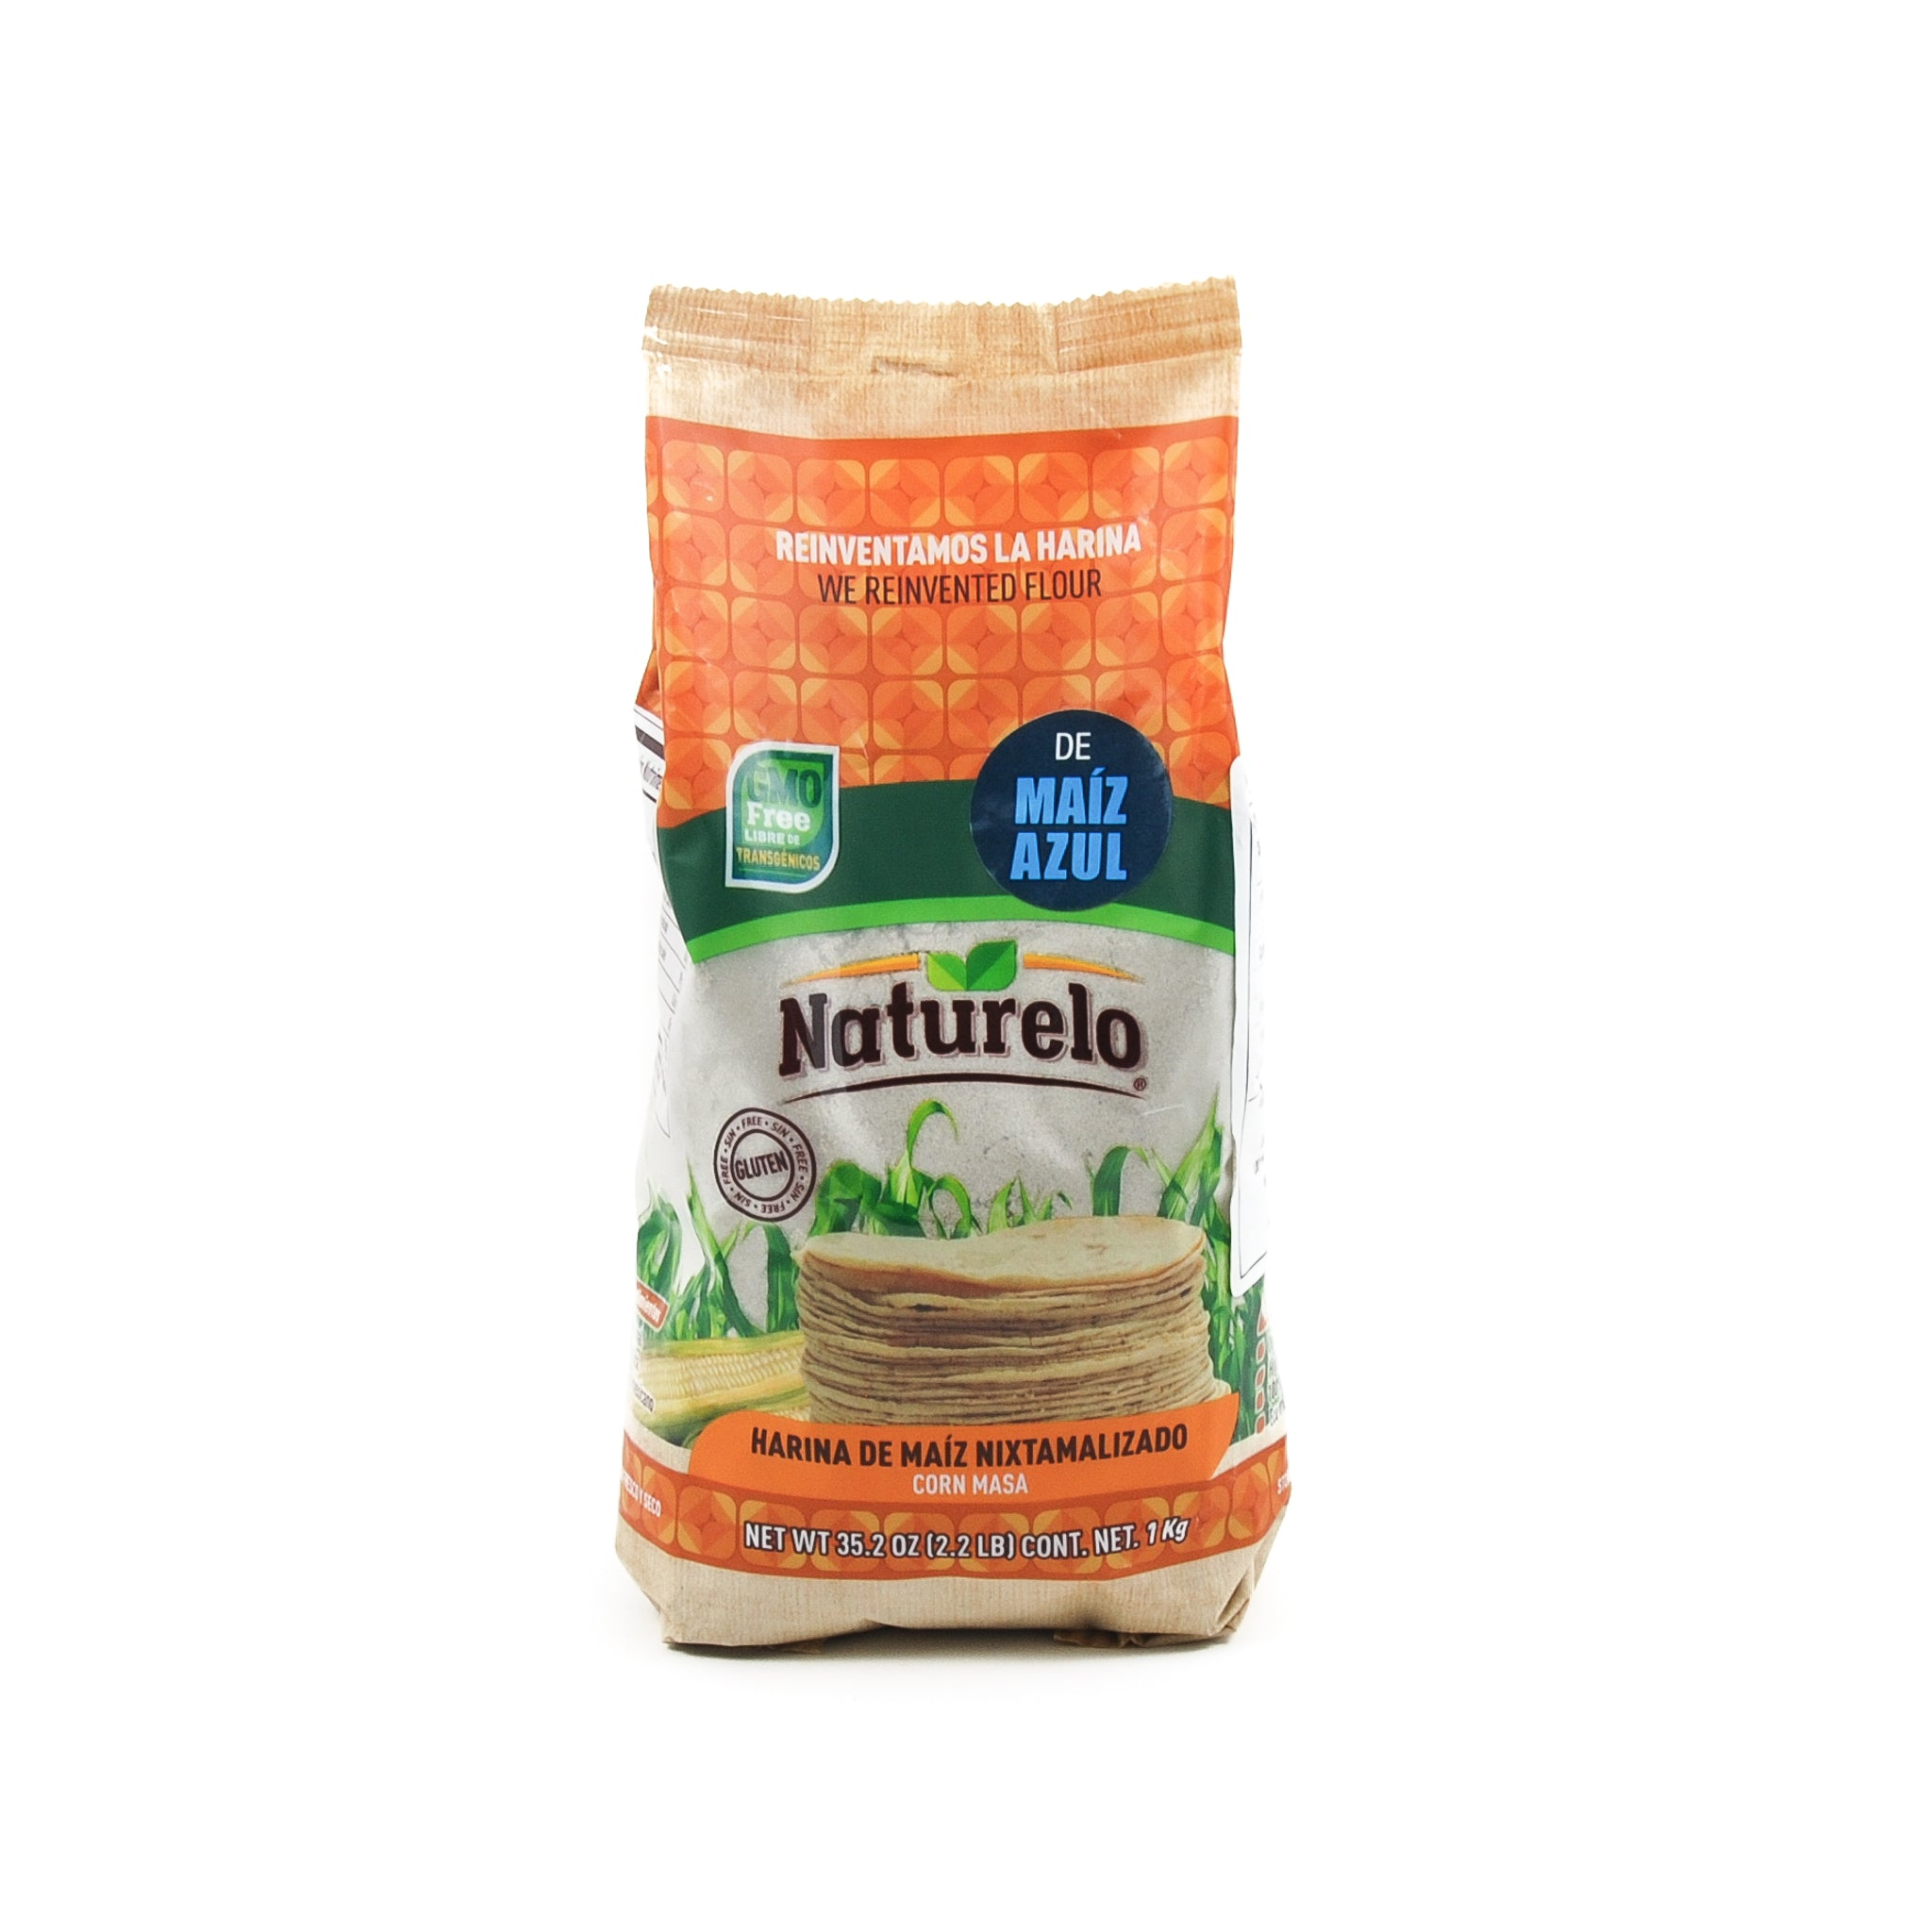 Blue Masa Harina Flour From Mexico Buy Online At Sous Chef Uk